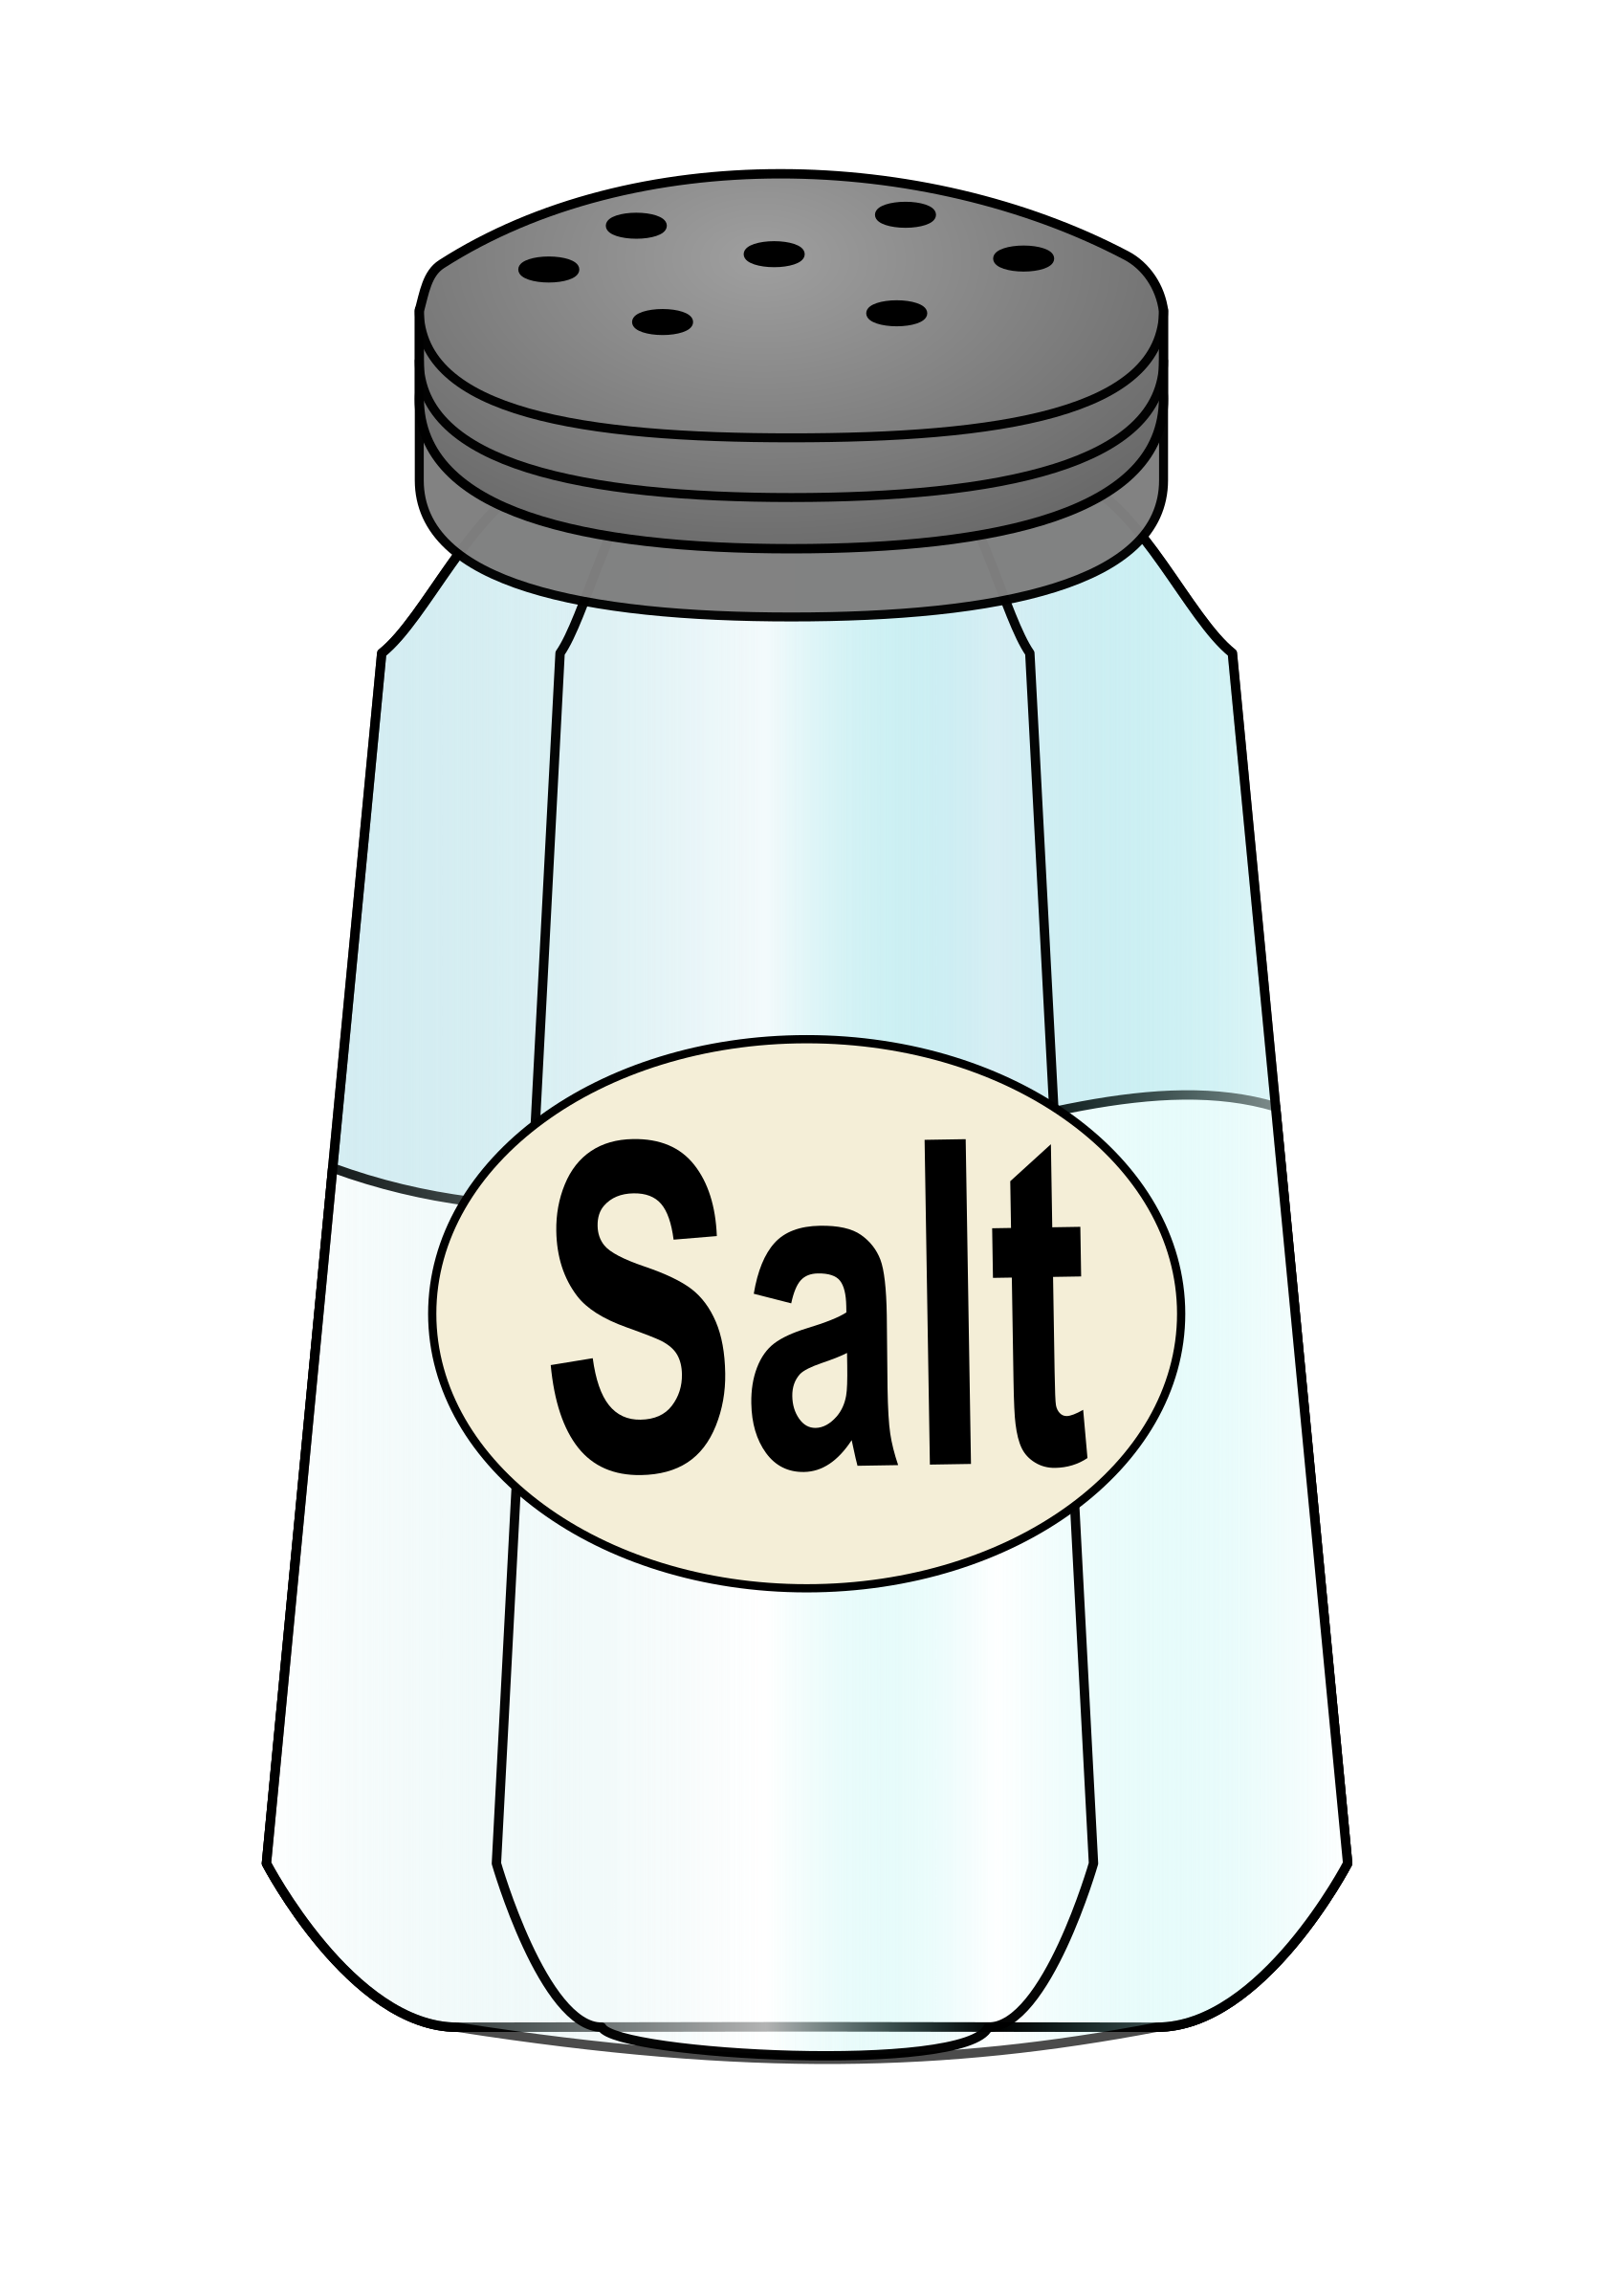 image free library Salt big image png. Shaker clipart.